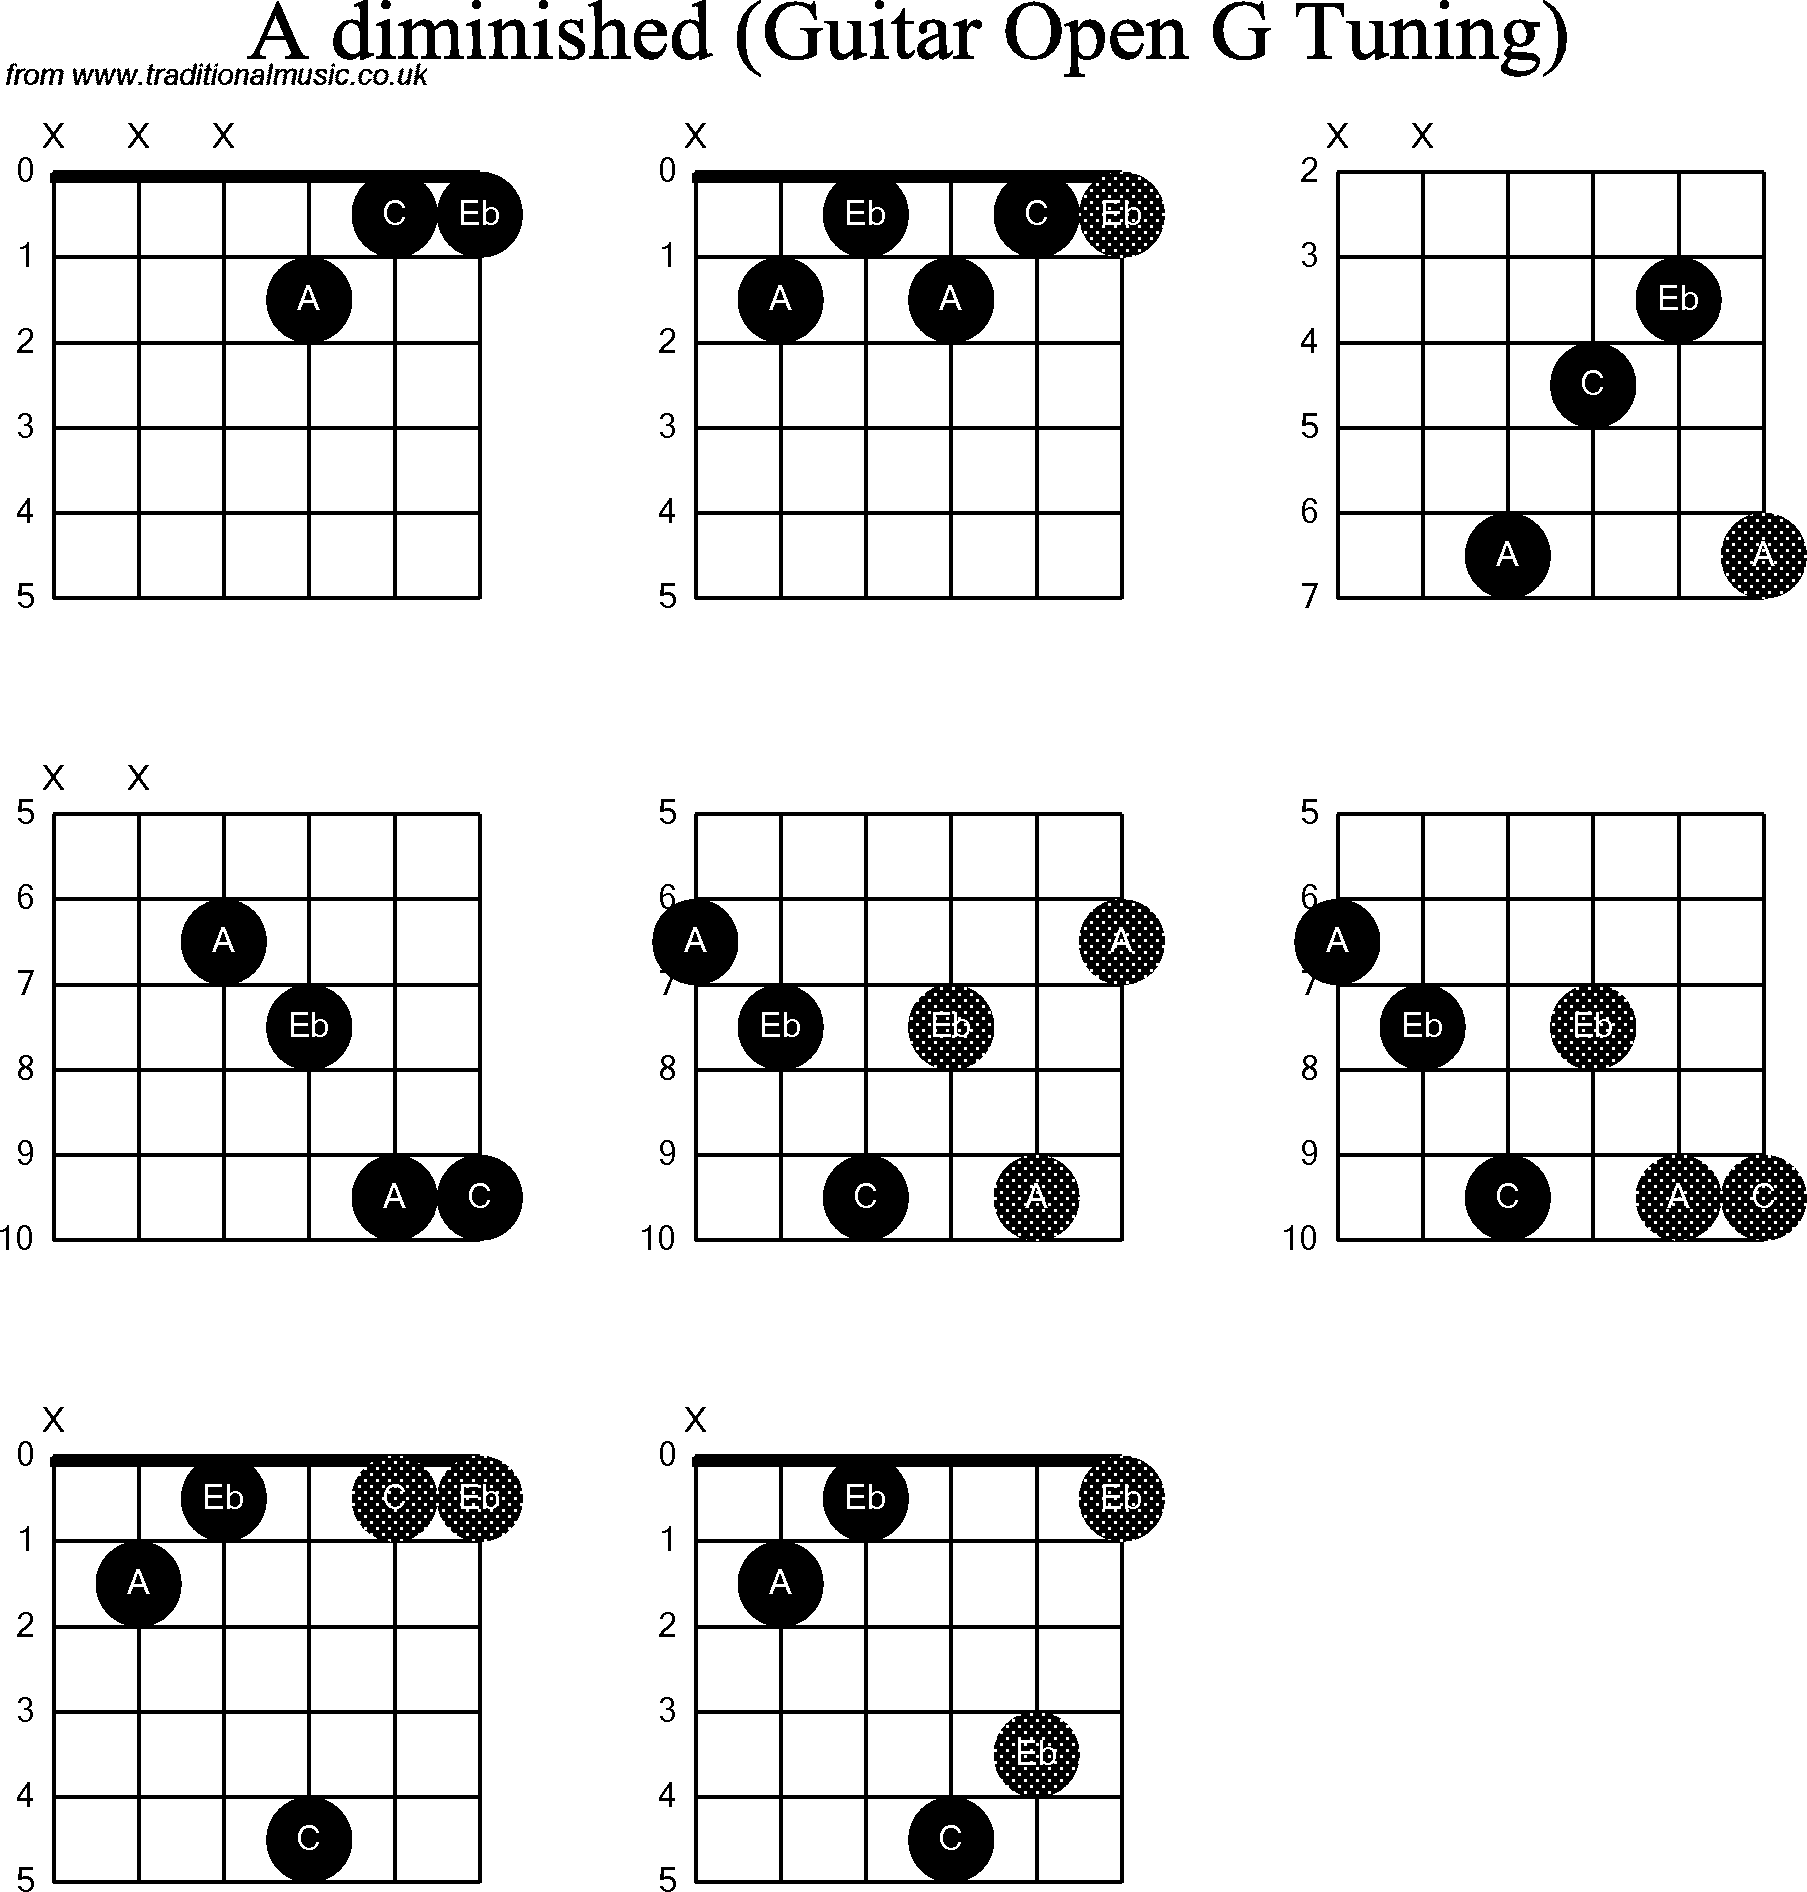 chord diagrams for  dobro a diminished